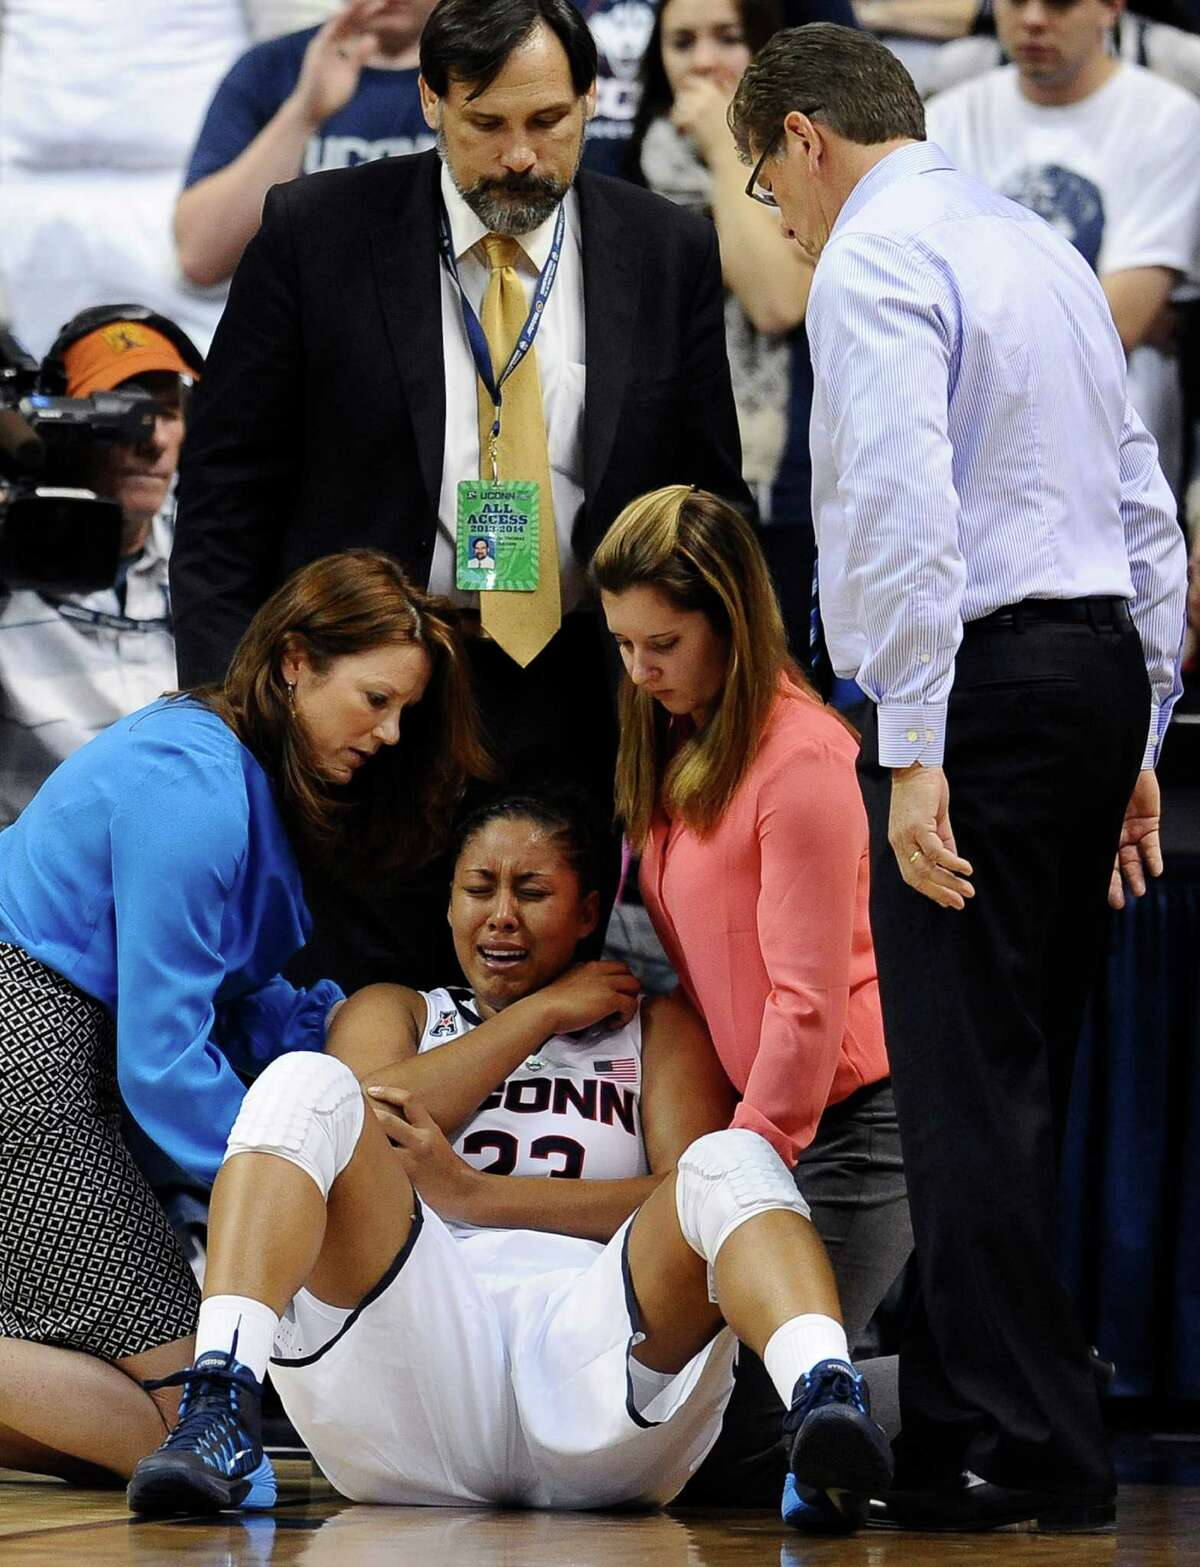 Connecticut head coach Geno Auriemma, right, looks at injured player Kaleena Mosqueda-Lewis, center, as she is tended to by assistant athletic trainer Rosemary Ragle, left, Team Physician Dr. Thomas Trojian, top center, and student athletic trainer Lauren Sheldon, second from right, during the second half of an NCAA college basketball game, Monday, Nov. 11, 2013, in Storrs, Conn. Mosqueda-Lewis left the game with an injury to her right elbow. Connecticut won 76-57.